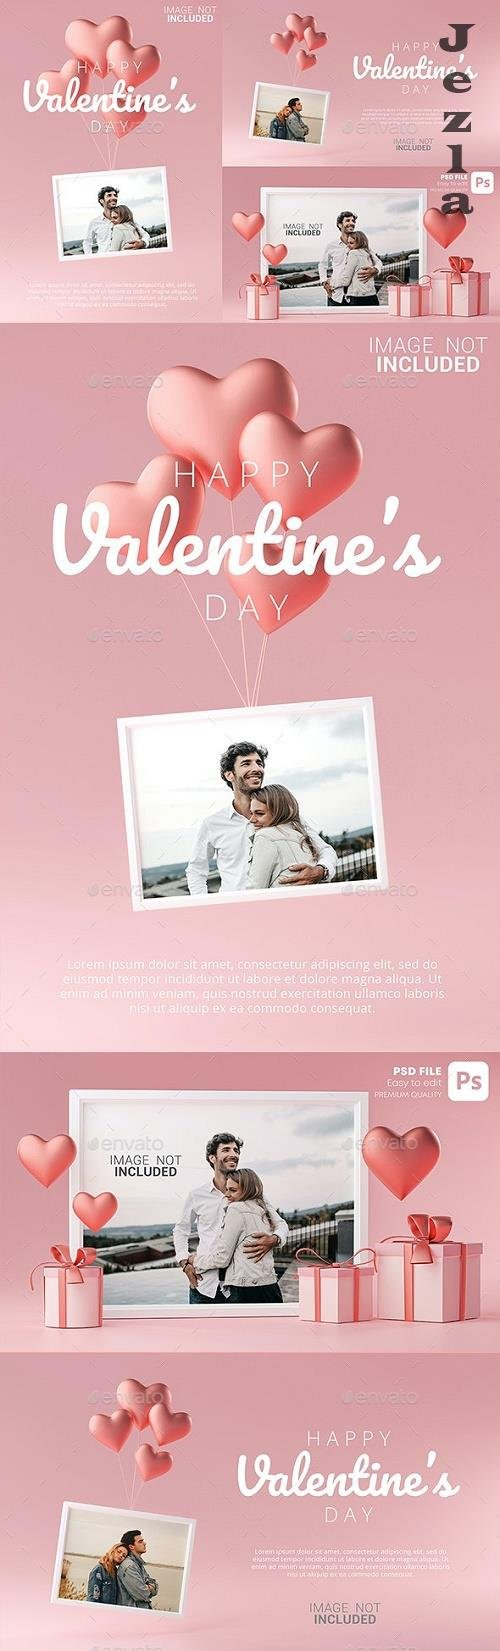 GraphicRiver - Portrait Photo Frame Mockup Template Love Heart Ballon and Gift Box 3D Rendering 30090480